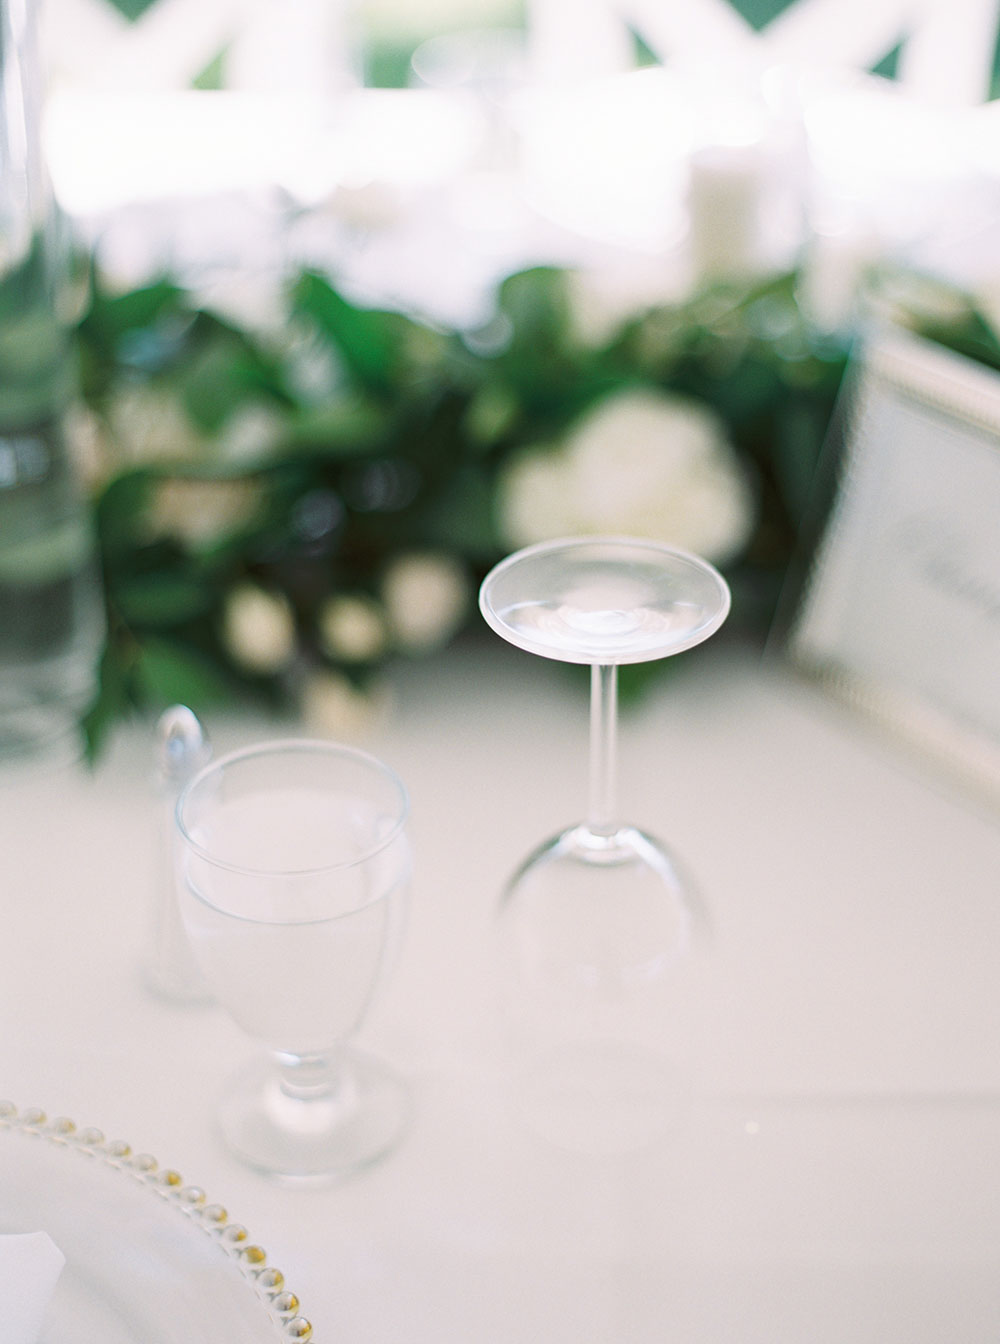 kurtz-orchards-wedding-gracewood-estate-niagara-on-the-lake-photo-by-katie-nicolle-photography-0075.JPG